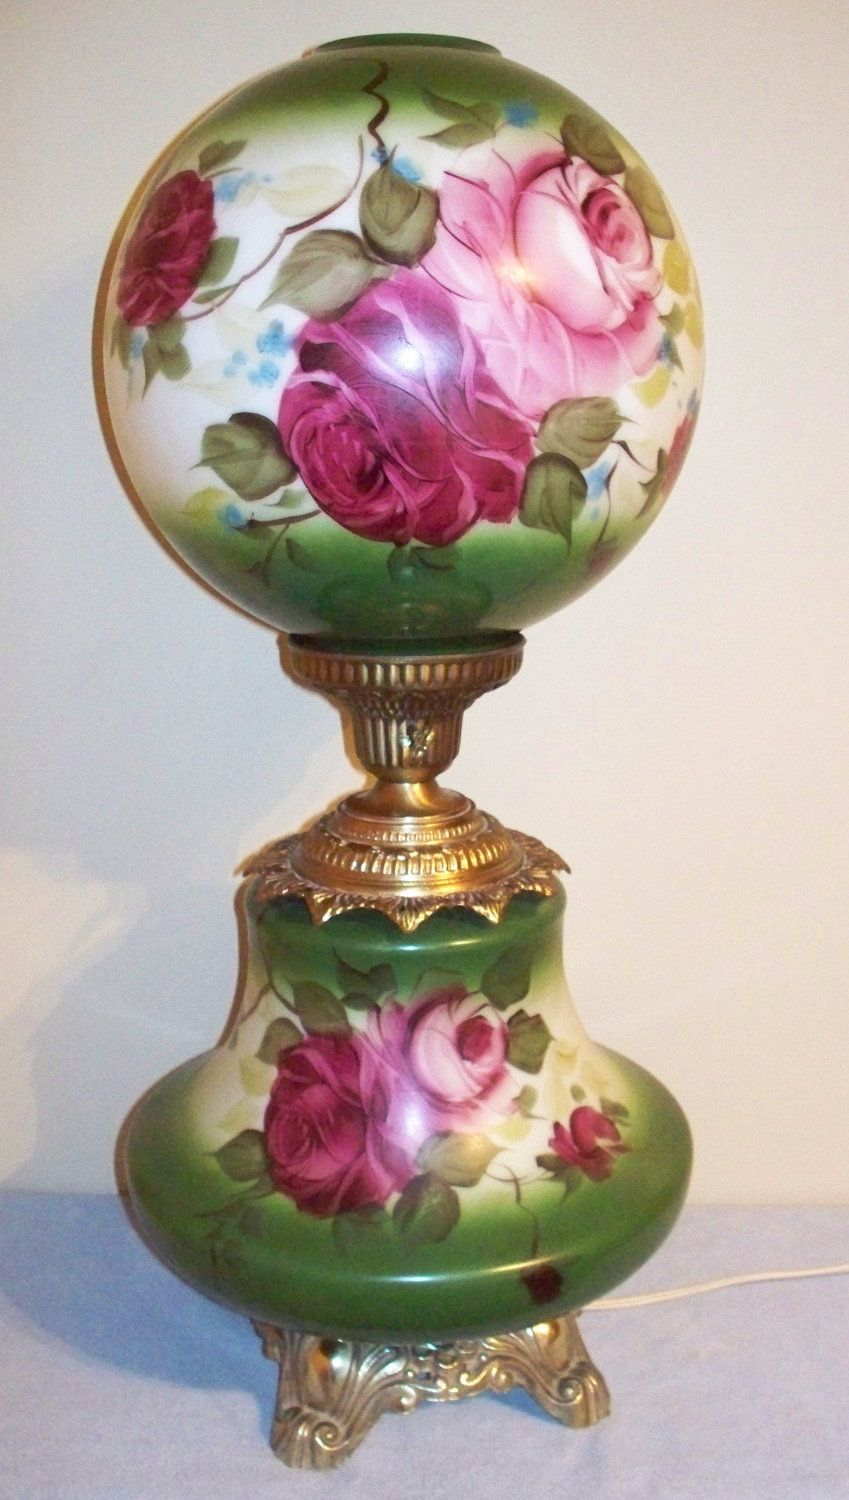 Vintage Electric Parlor Lamp Gwtw Ball Globe Hand Painted